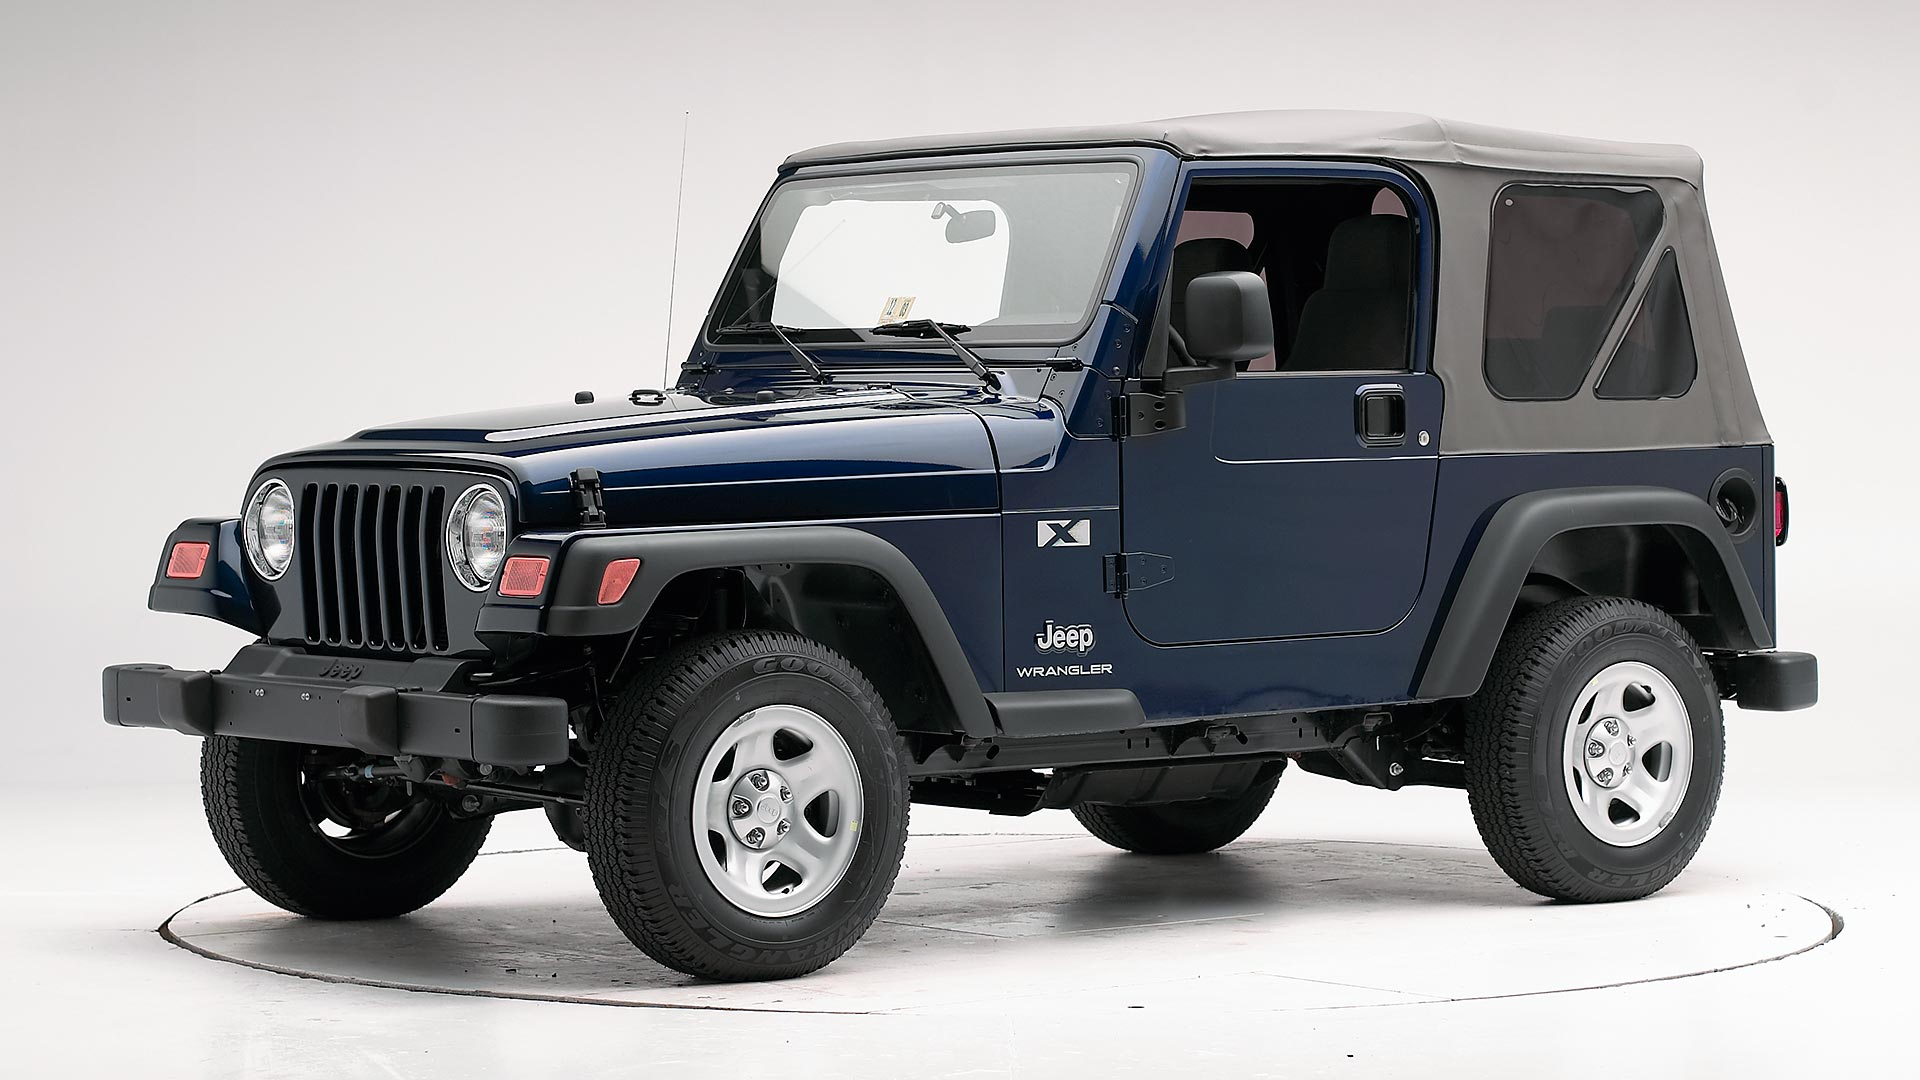 2006 Jeep Wrangler 2-door SUV